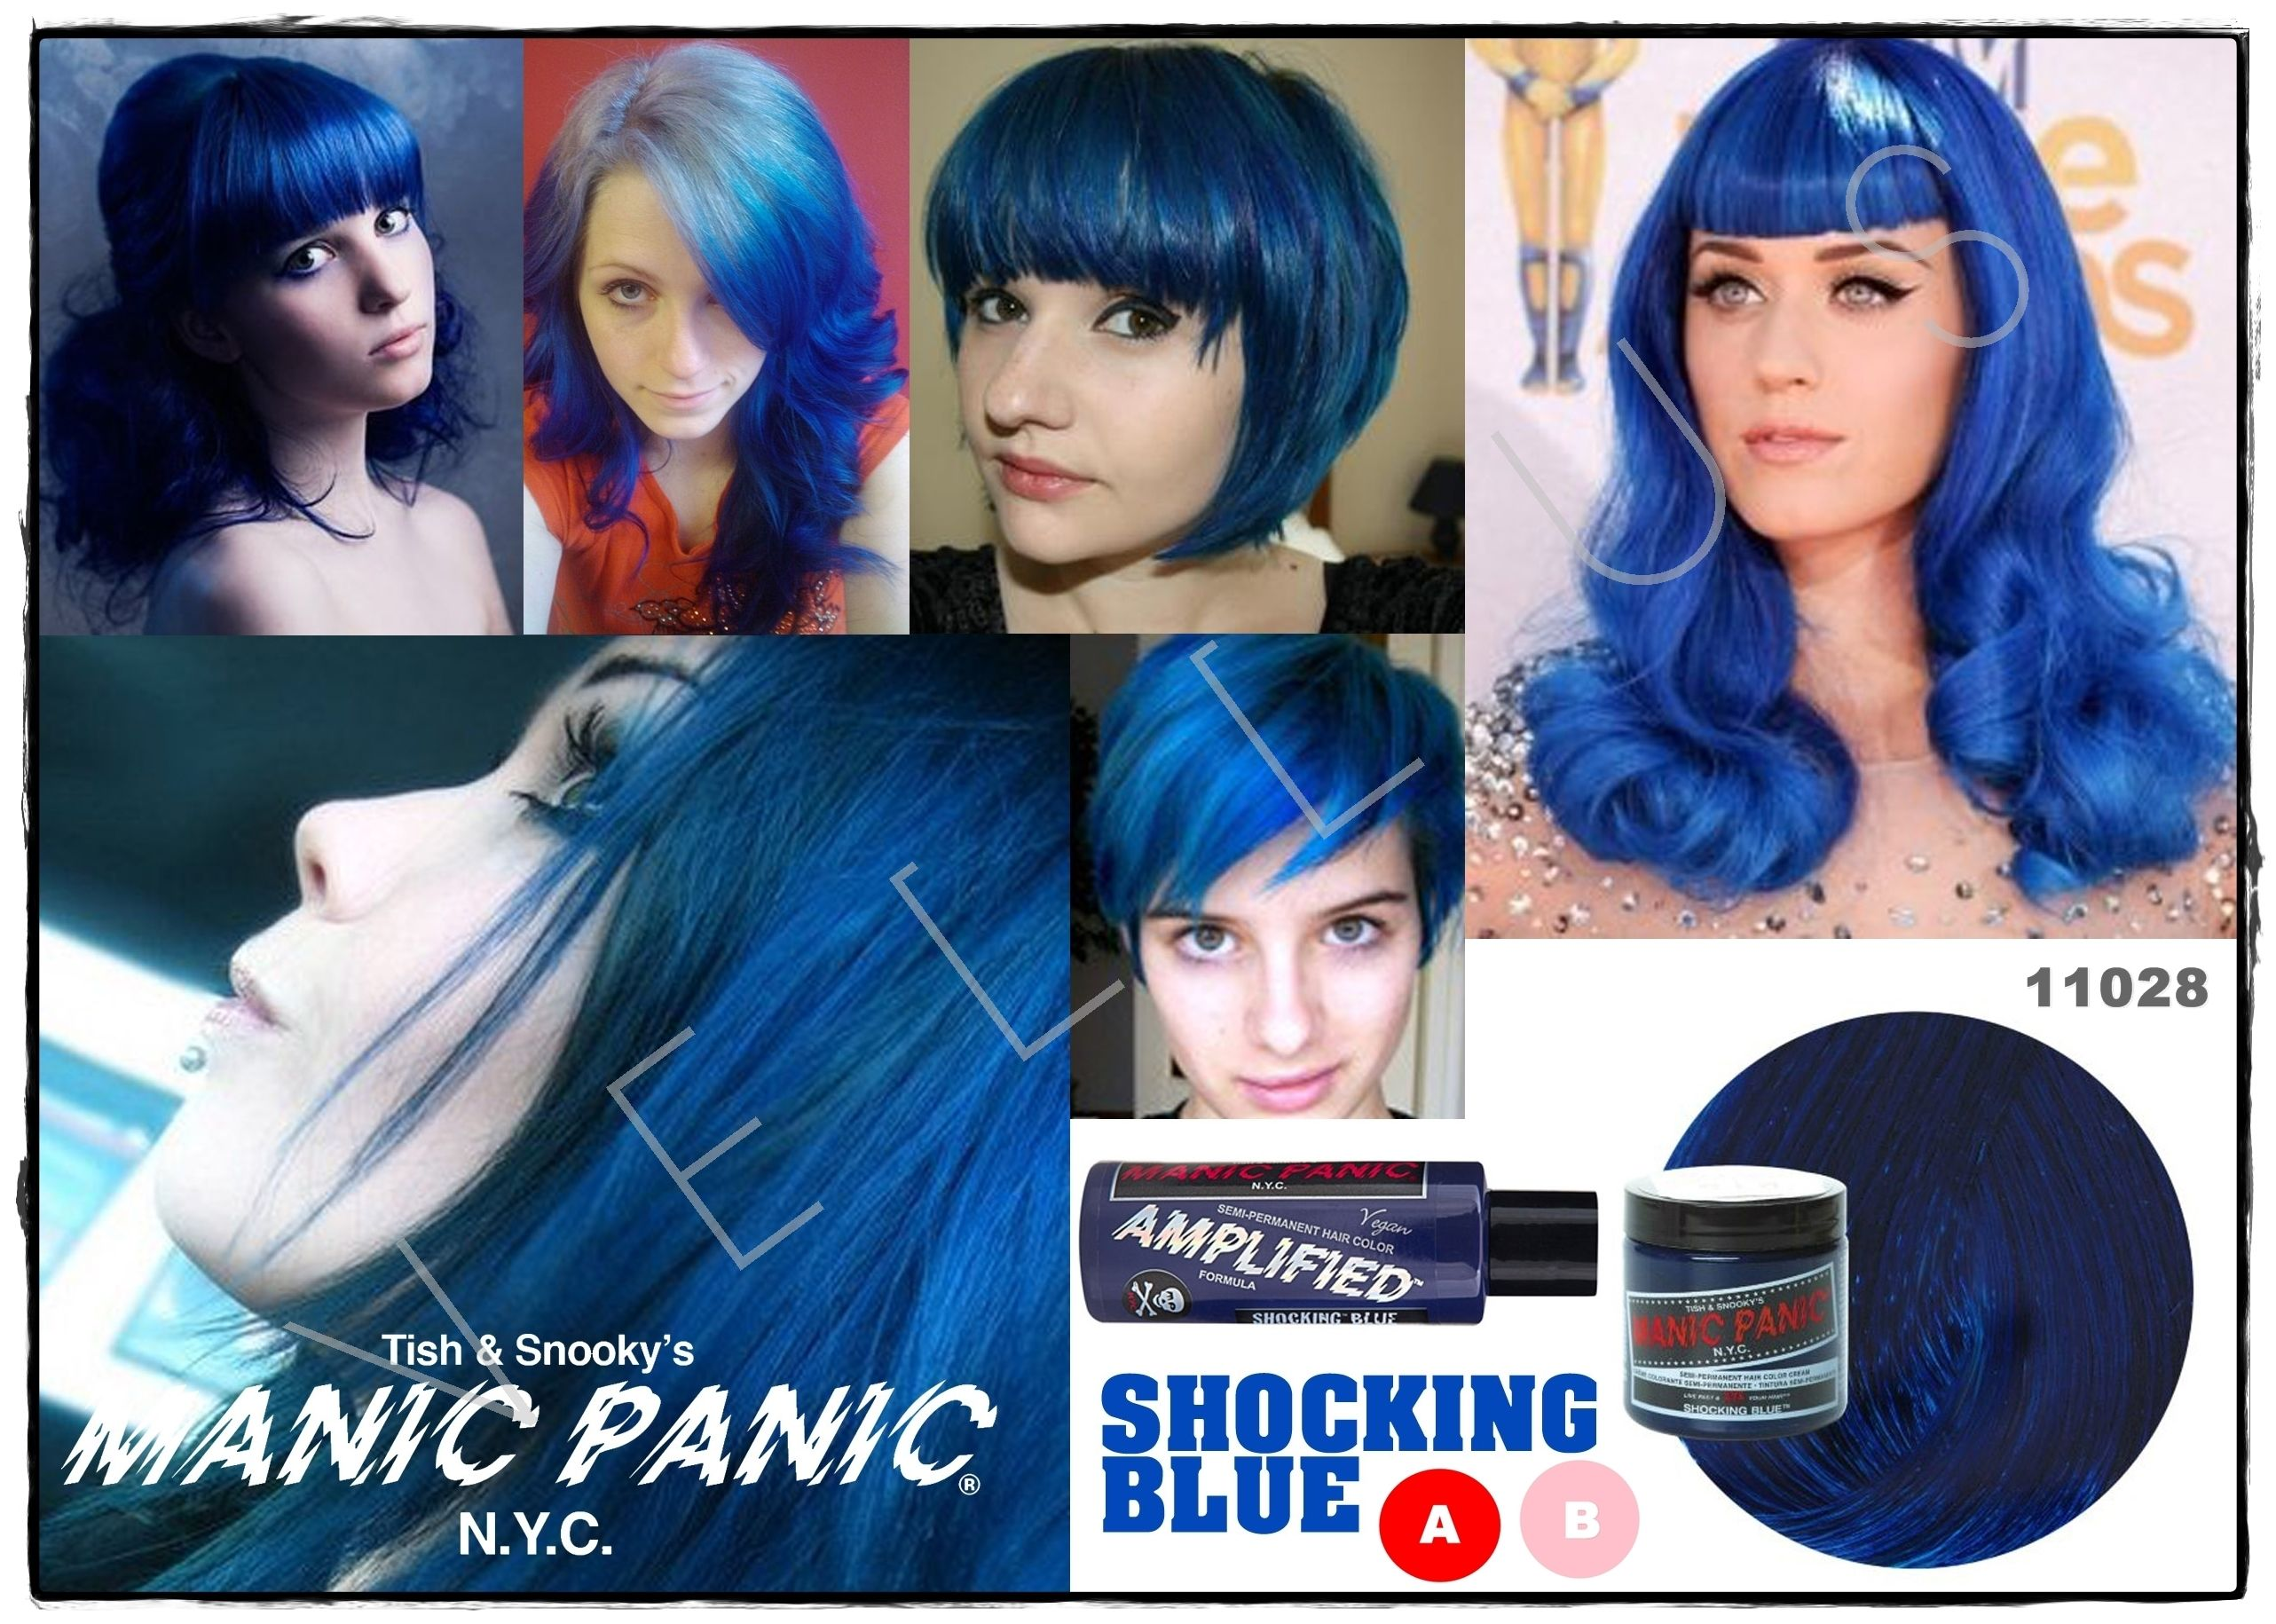 Manic Panic Amplified Shocking Blue Vellus Hair Studio 83a Tanjong Pagar Road S 088504 Tel 62246566 Manic Panic Hair Dye Shocking Blue Hair Studio